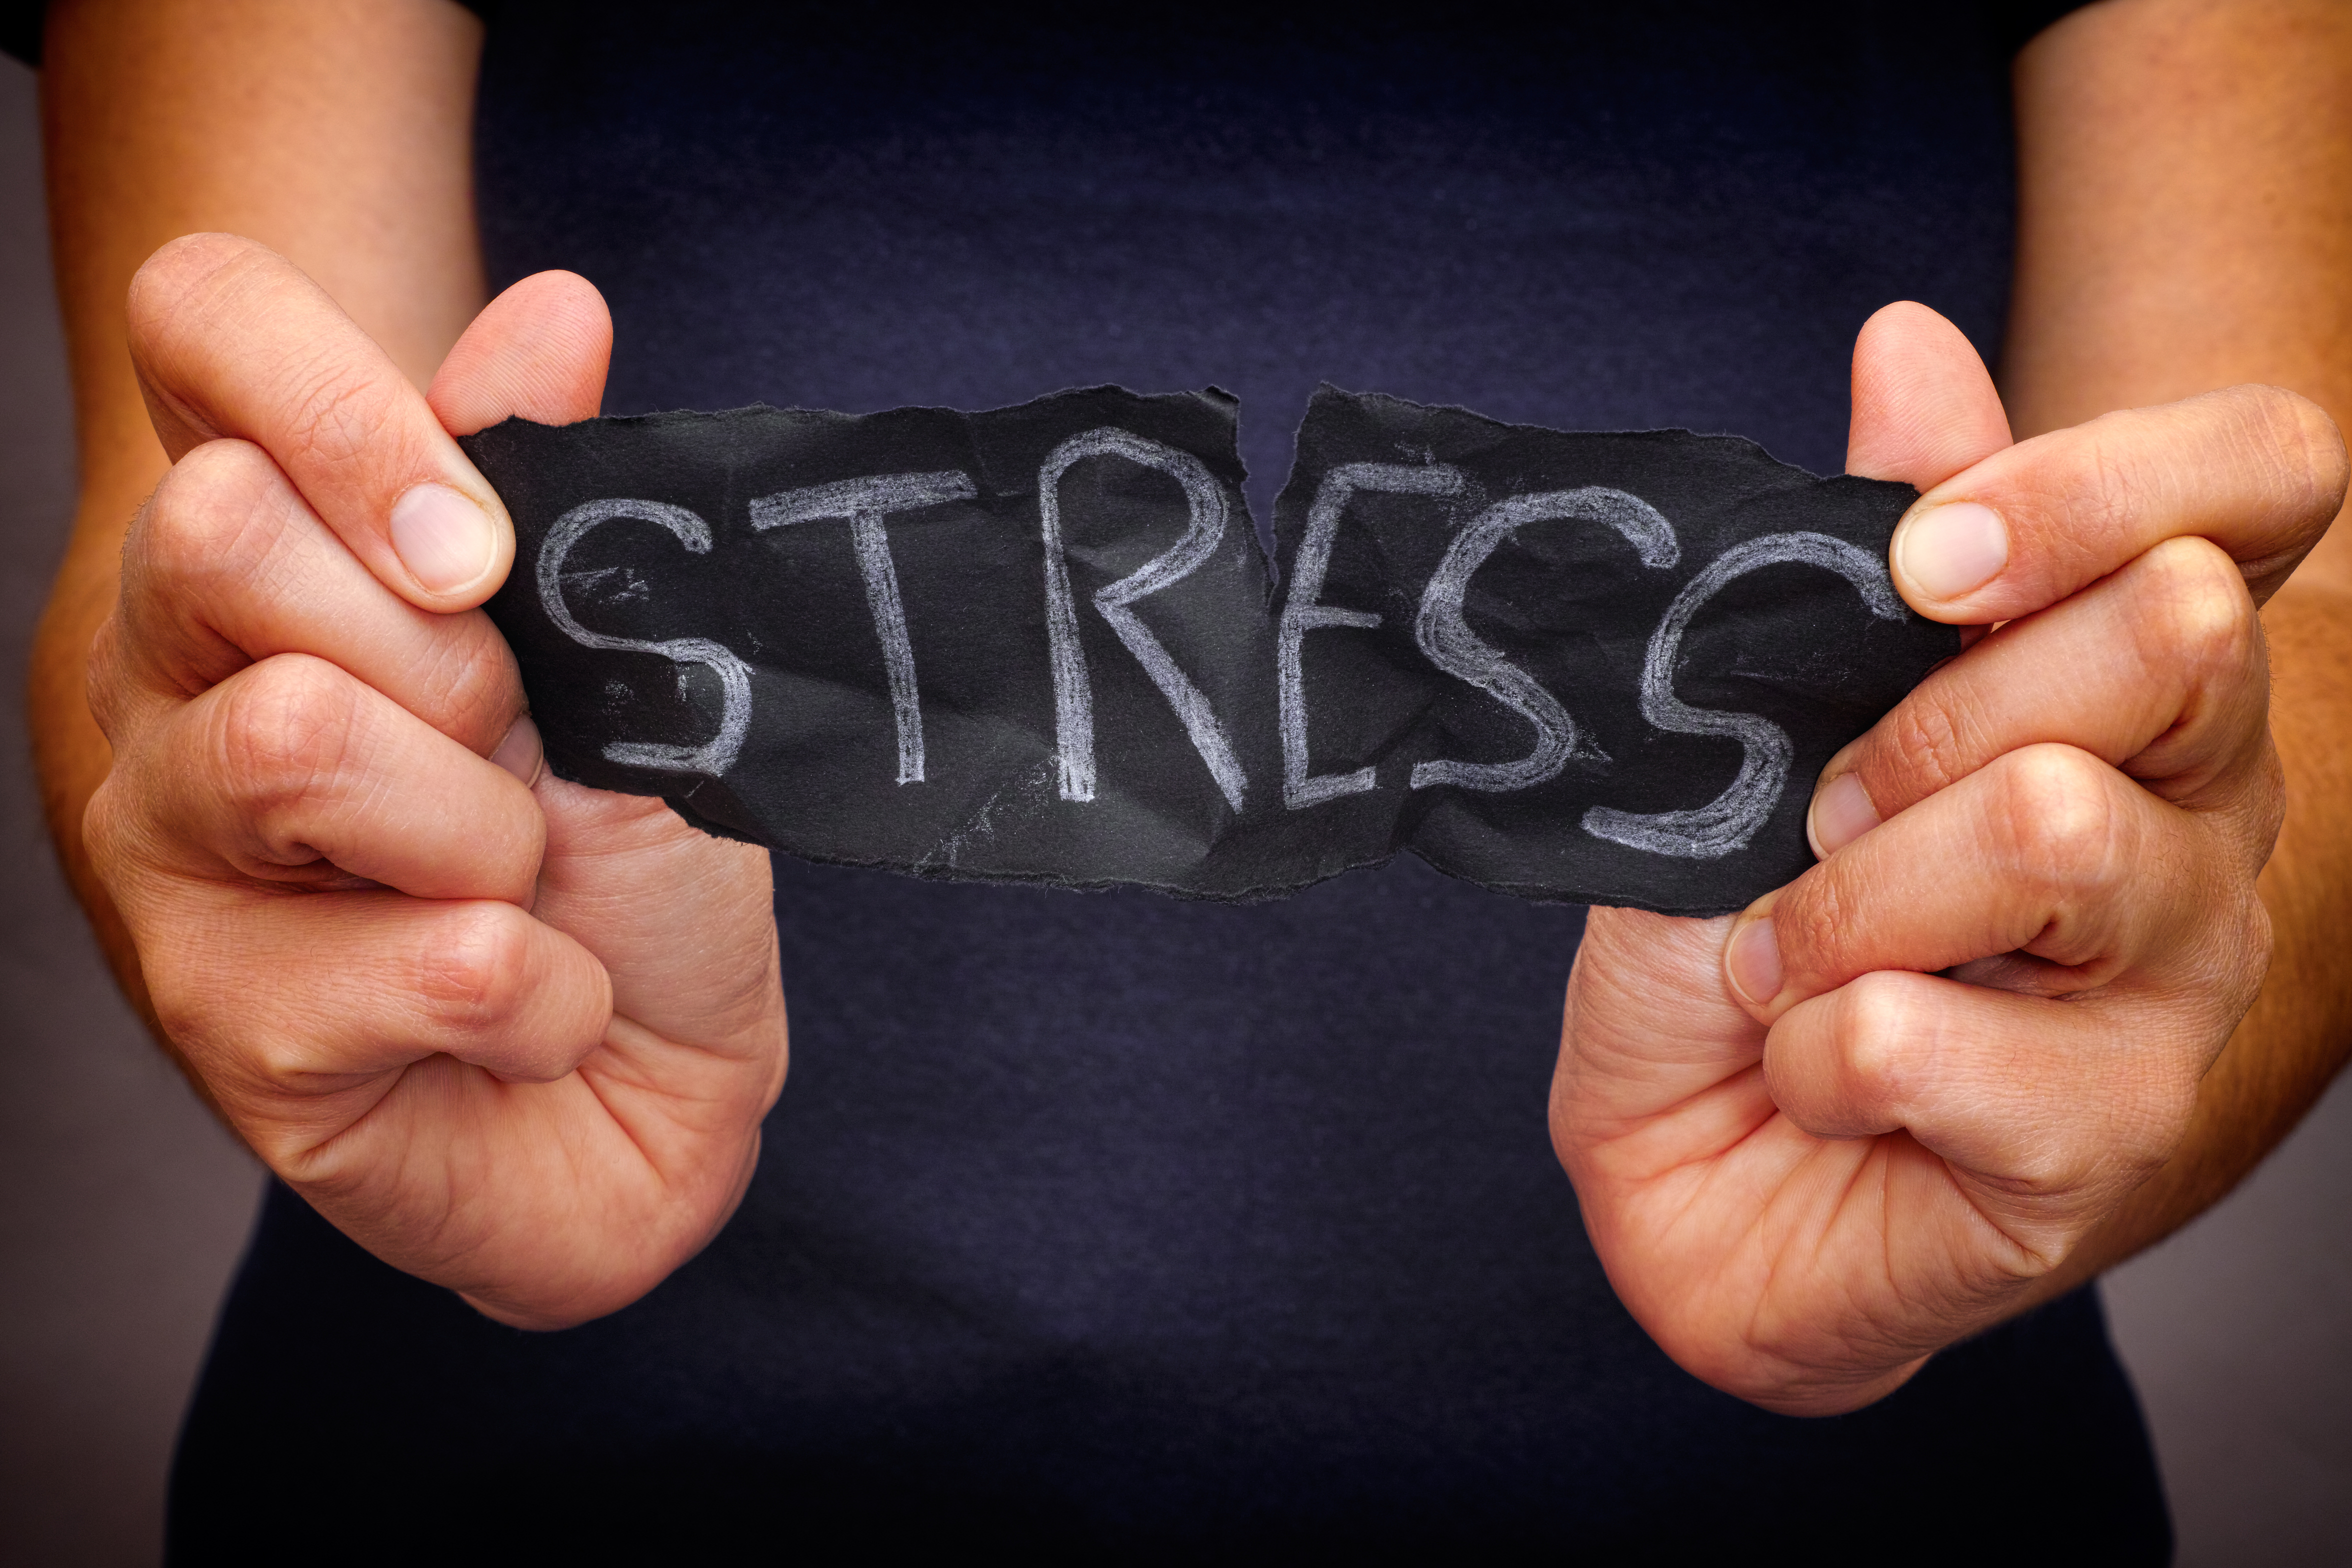 How Does Stress Affect Your Menstrual Cycle? Here Are 5 Common Ways